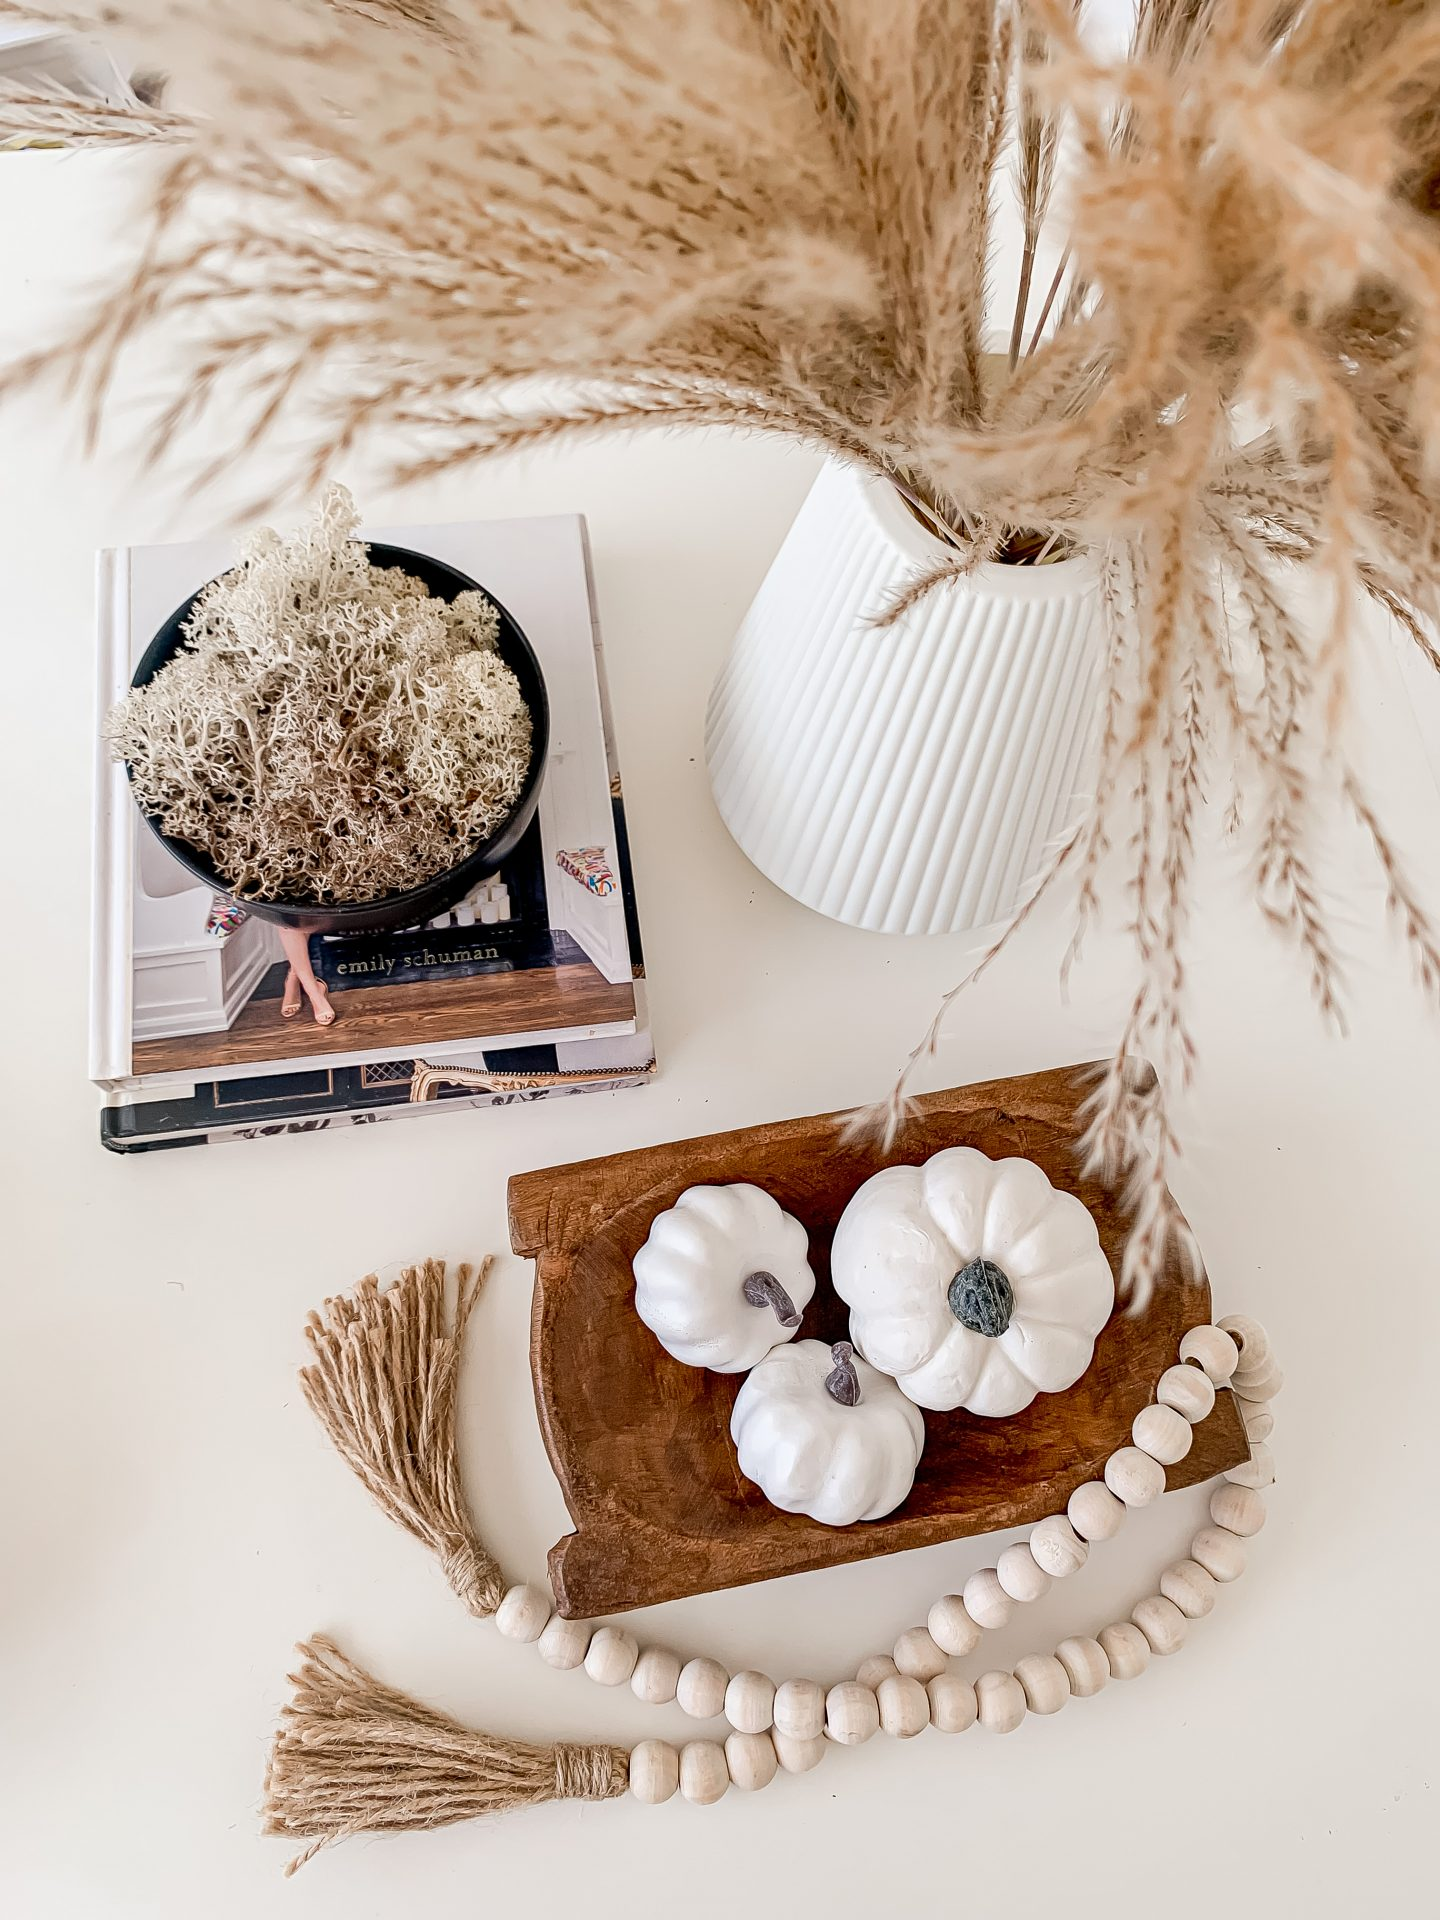 AUTUMN MUST HAVES & HOME STYLING TIPS